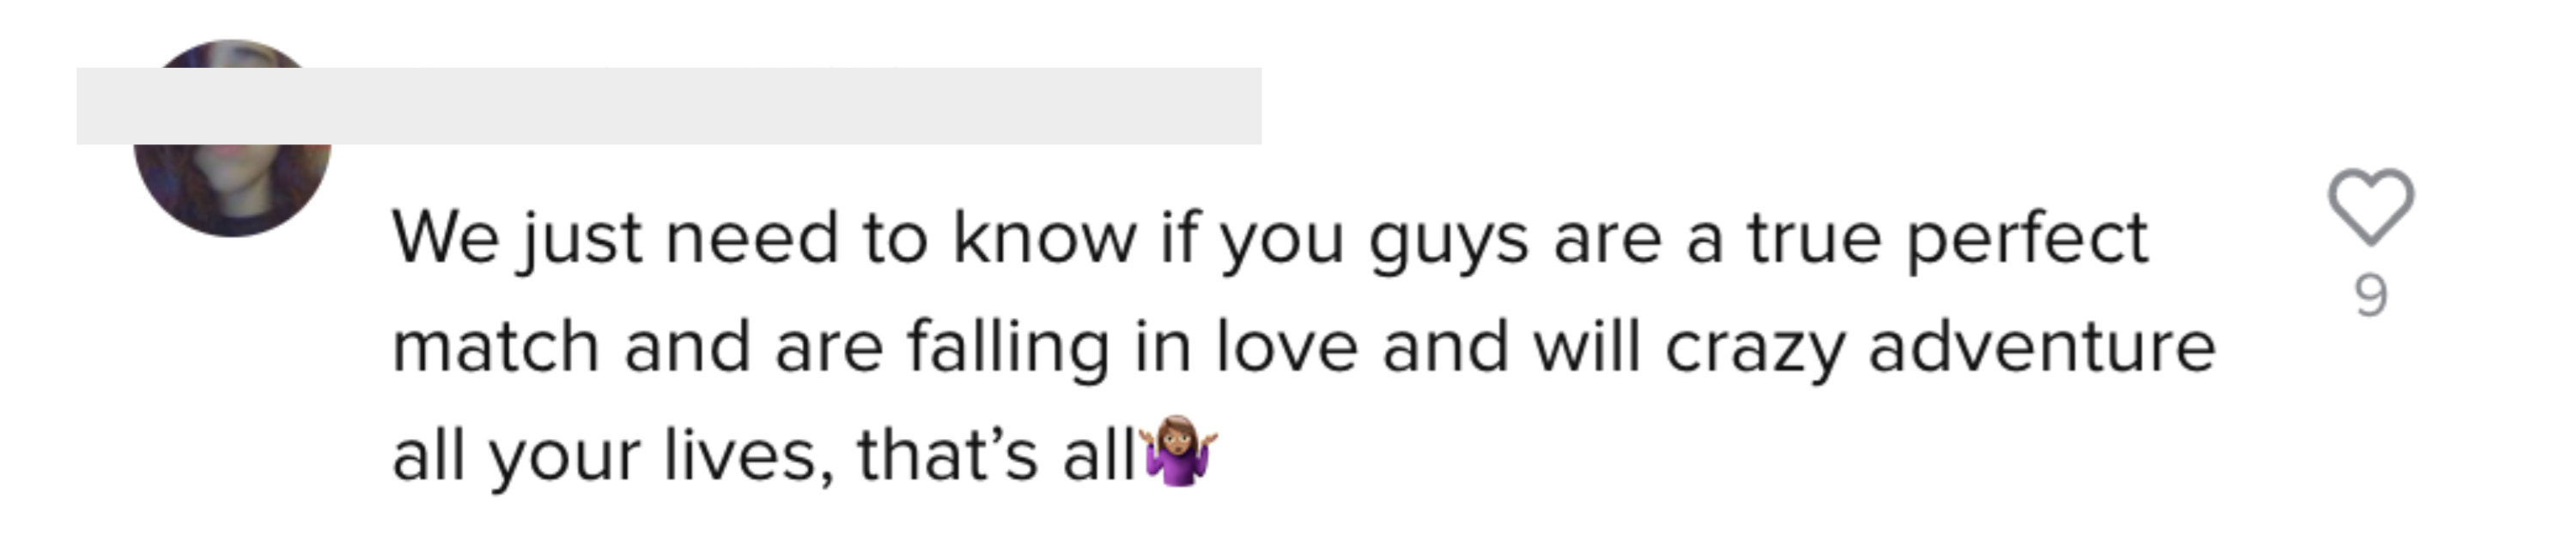 """One person says, """"We just need to know if you guys are true perfect match and are falling in love and will crazy adventure all your lives, that's all [shrugging woman emoji]"""